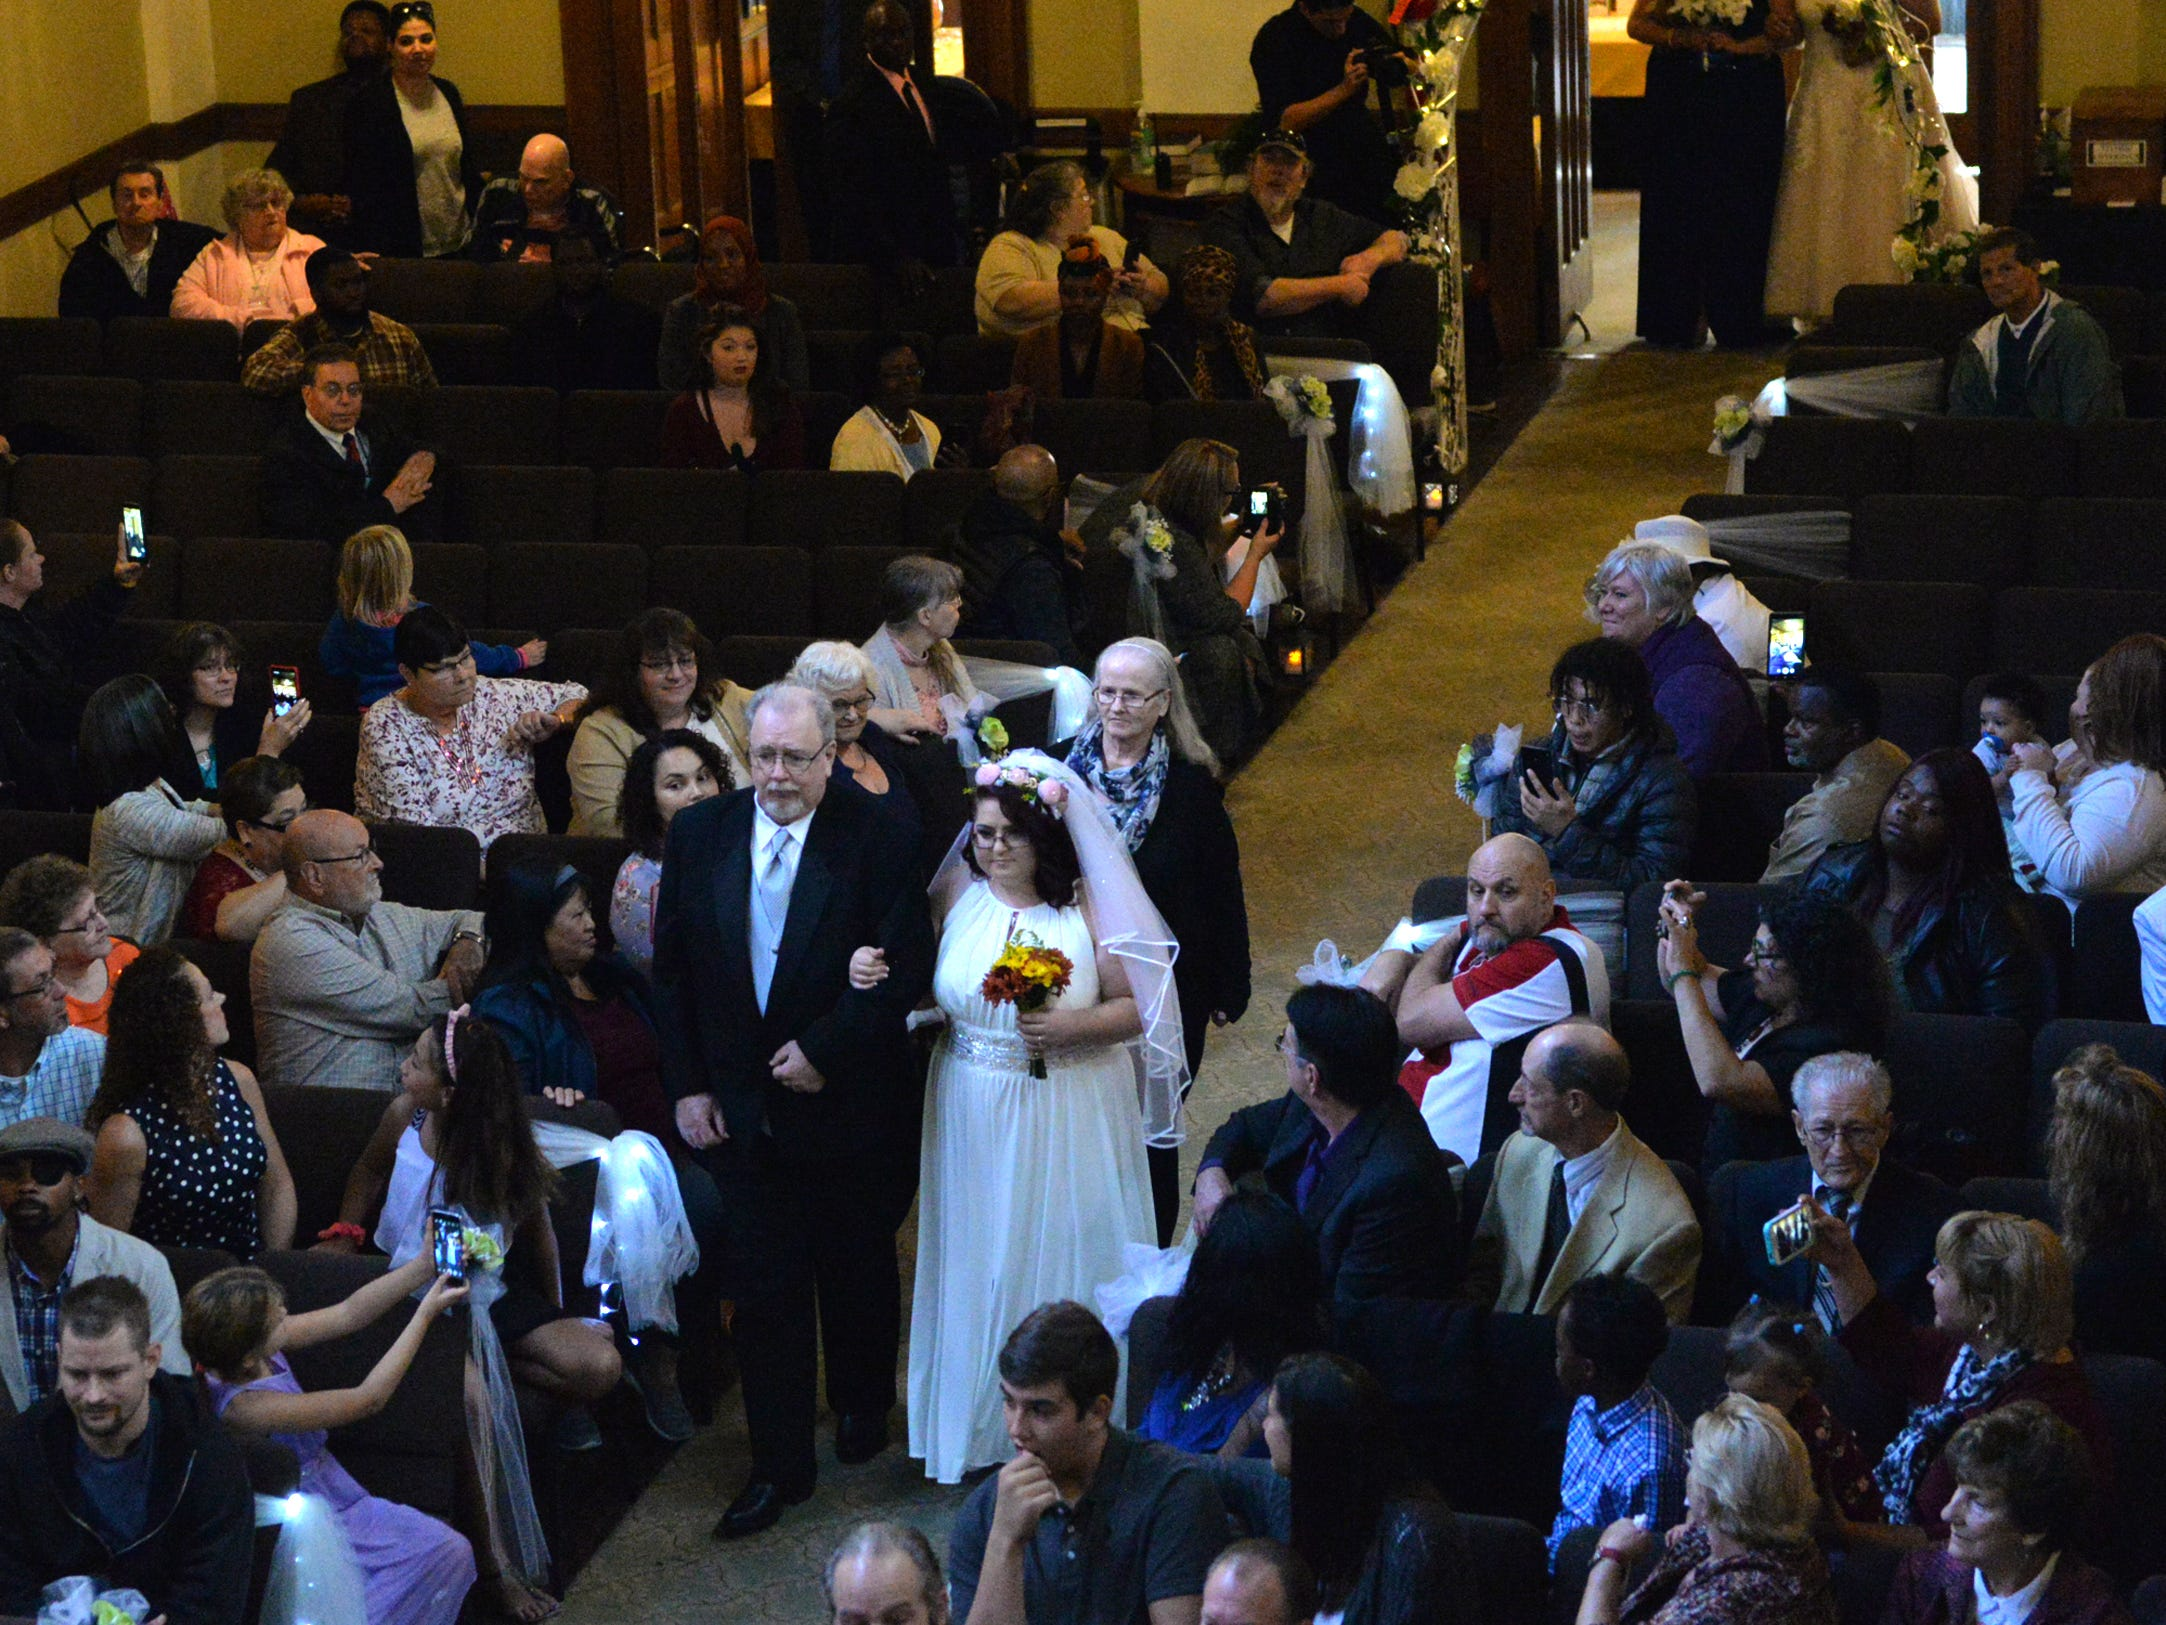 Fifteen couples were joined in marriage during One Big Wedding at Calvary Chapel in Lebanon, PA on October 13, 2018.